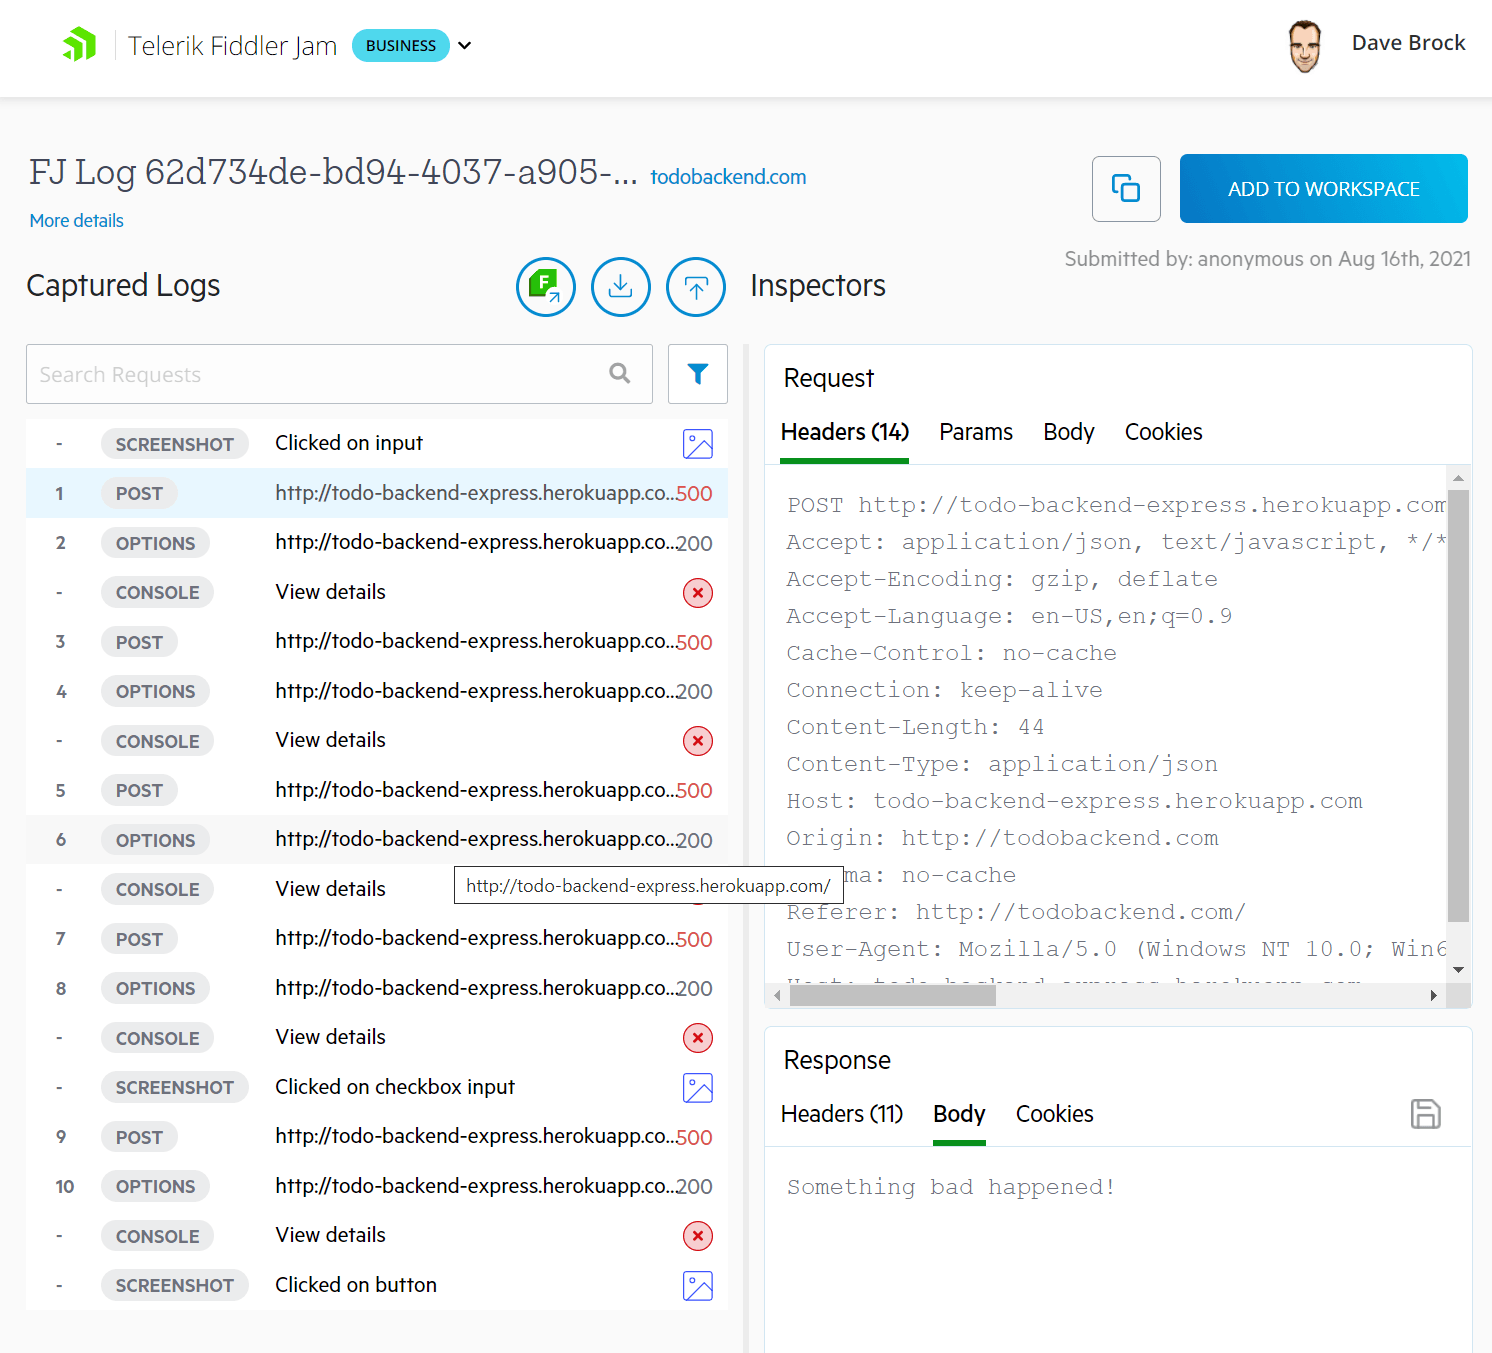 The captured logs show the actions taken, the Request logs, and the Response logs